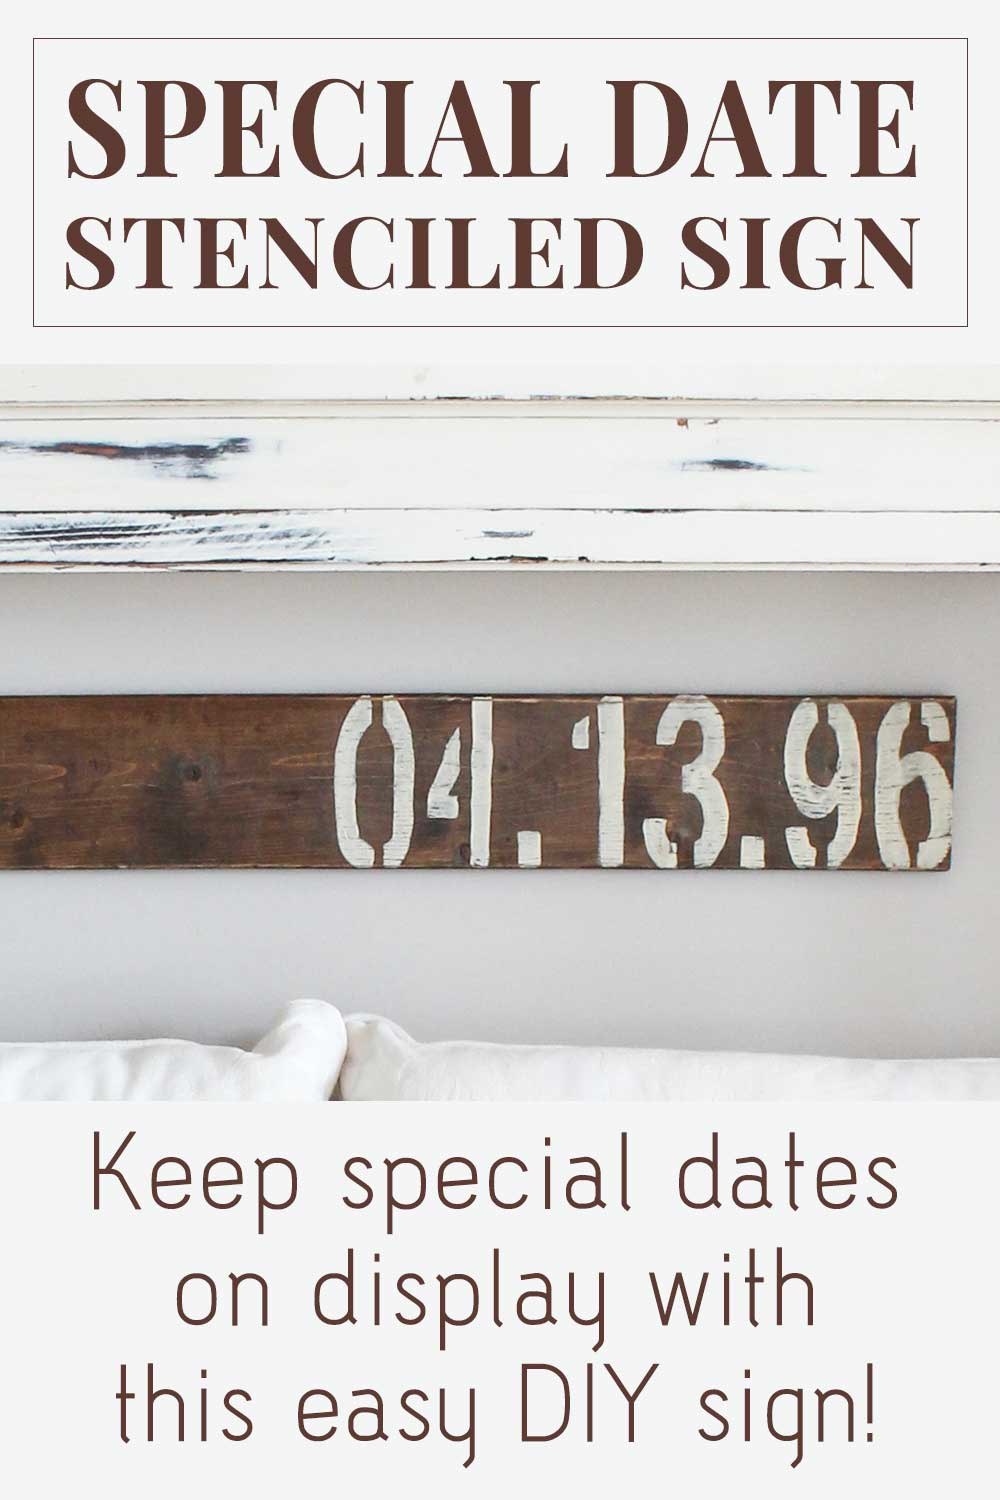 Special Date Stenciled Sign